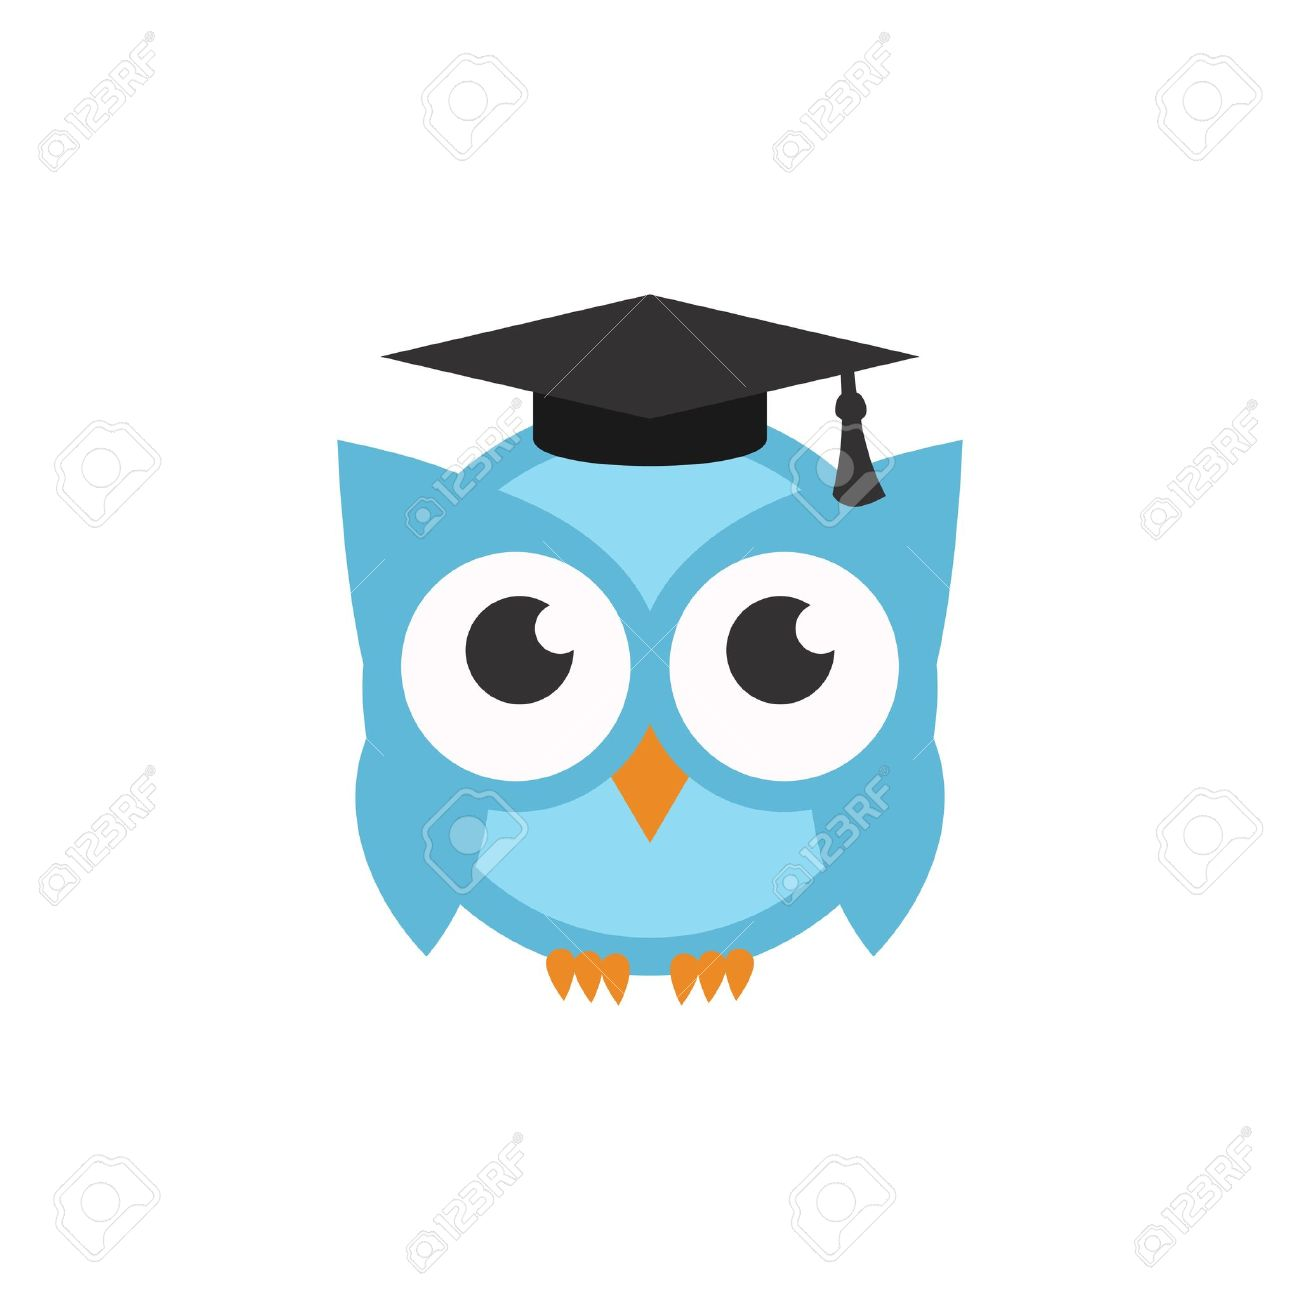 Owl Template Photo Picture And Royalty Free Image Image – Owl Template